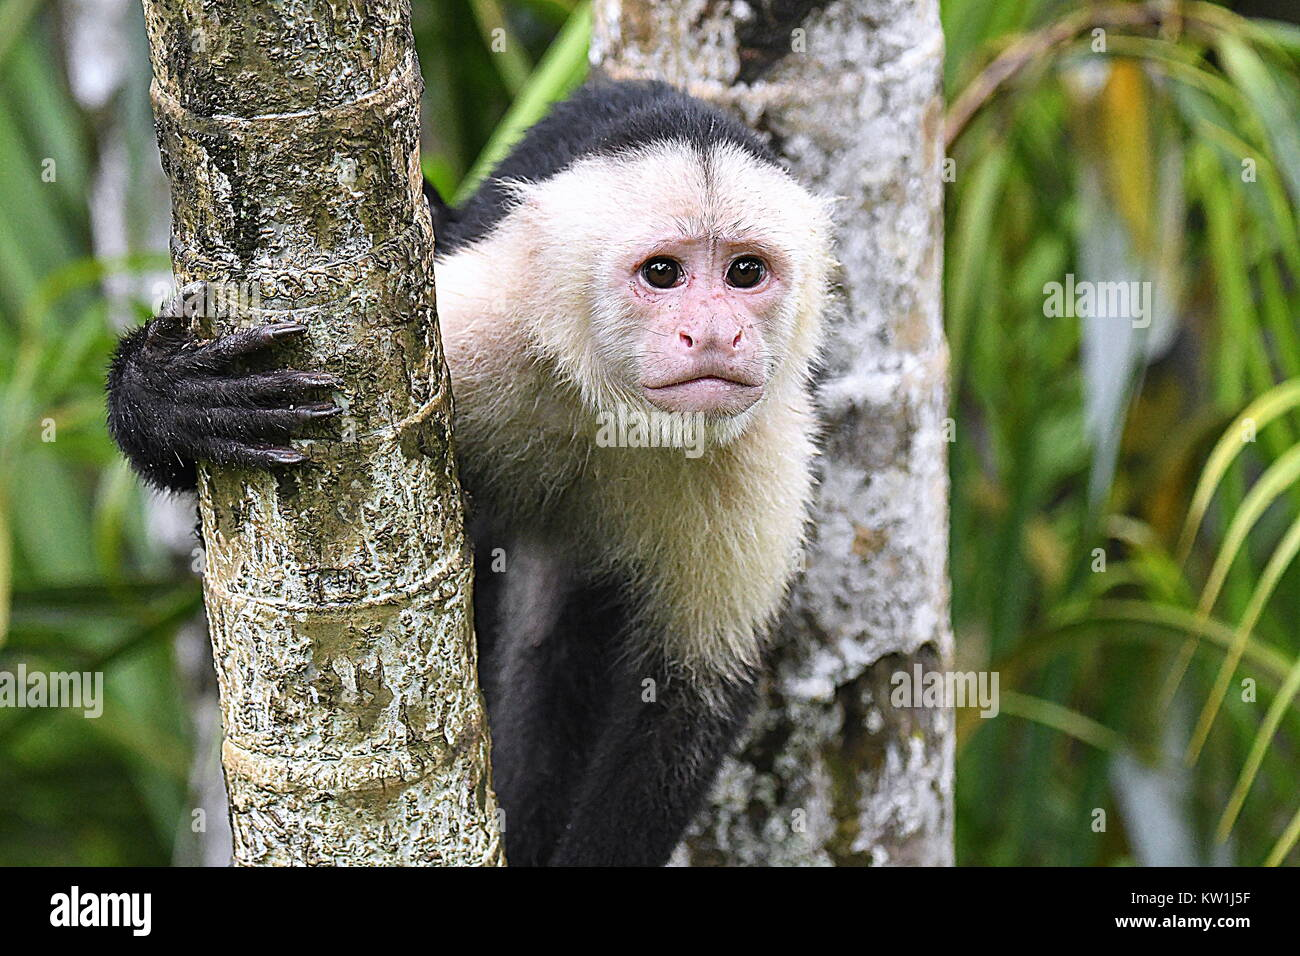 Capuchin monkey in Costa Rica Stock Photo